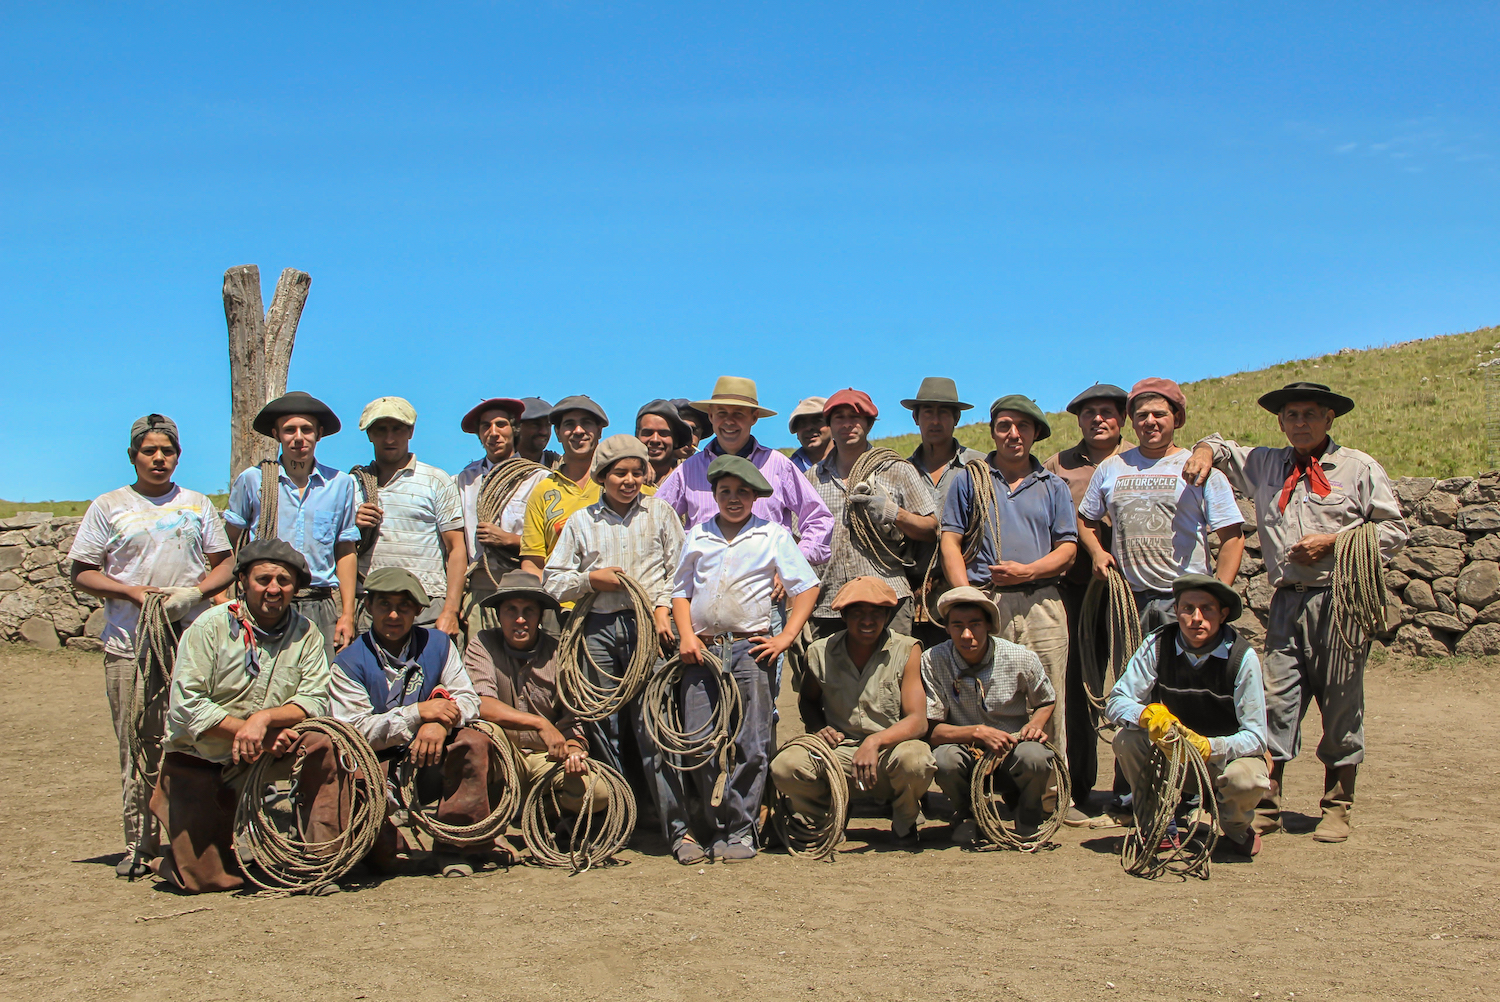 The Gaucho Team at Estancia Los Potreros